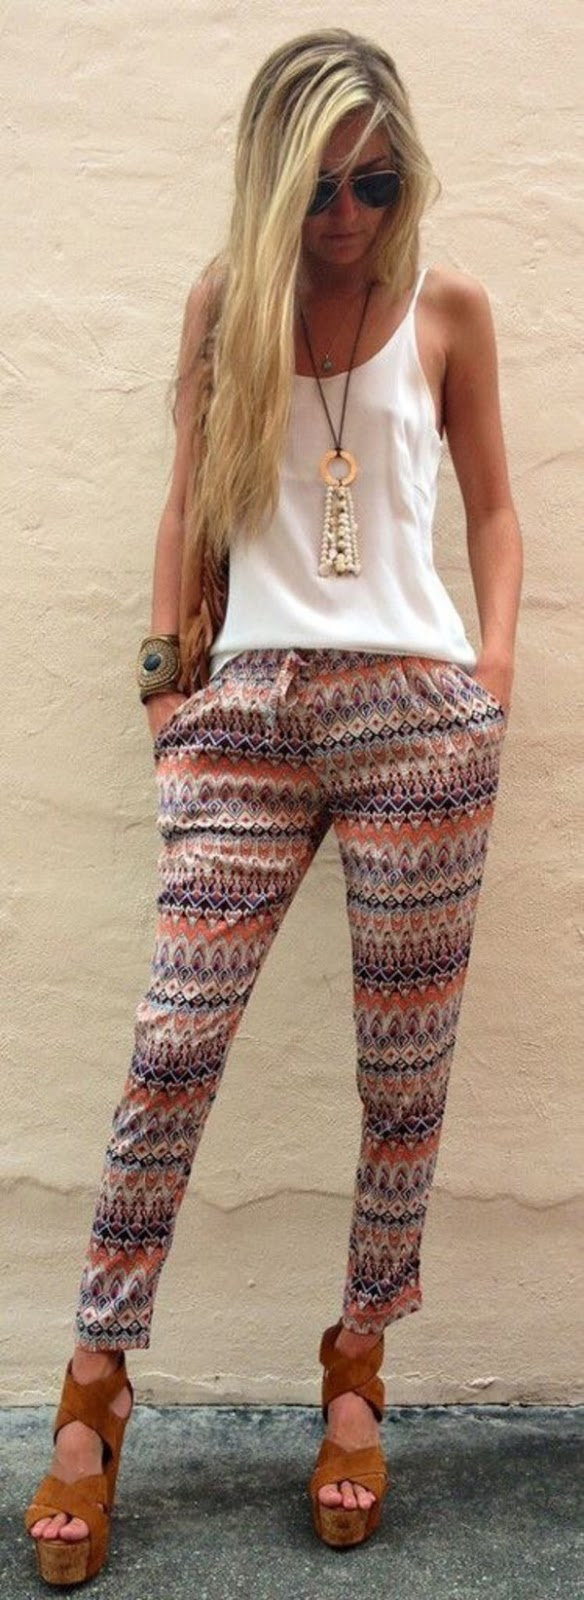 cool boho style outfit: top + pants